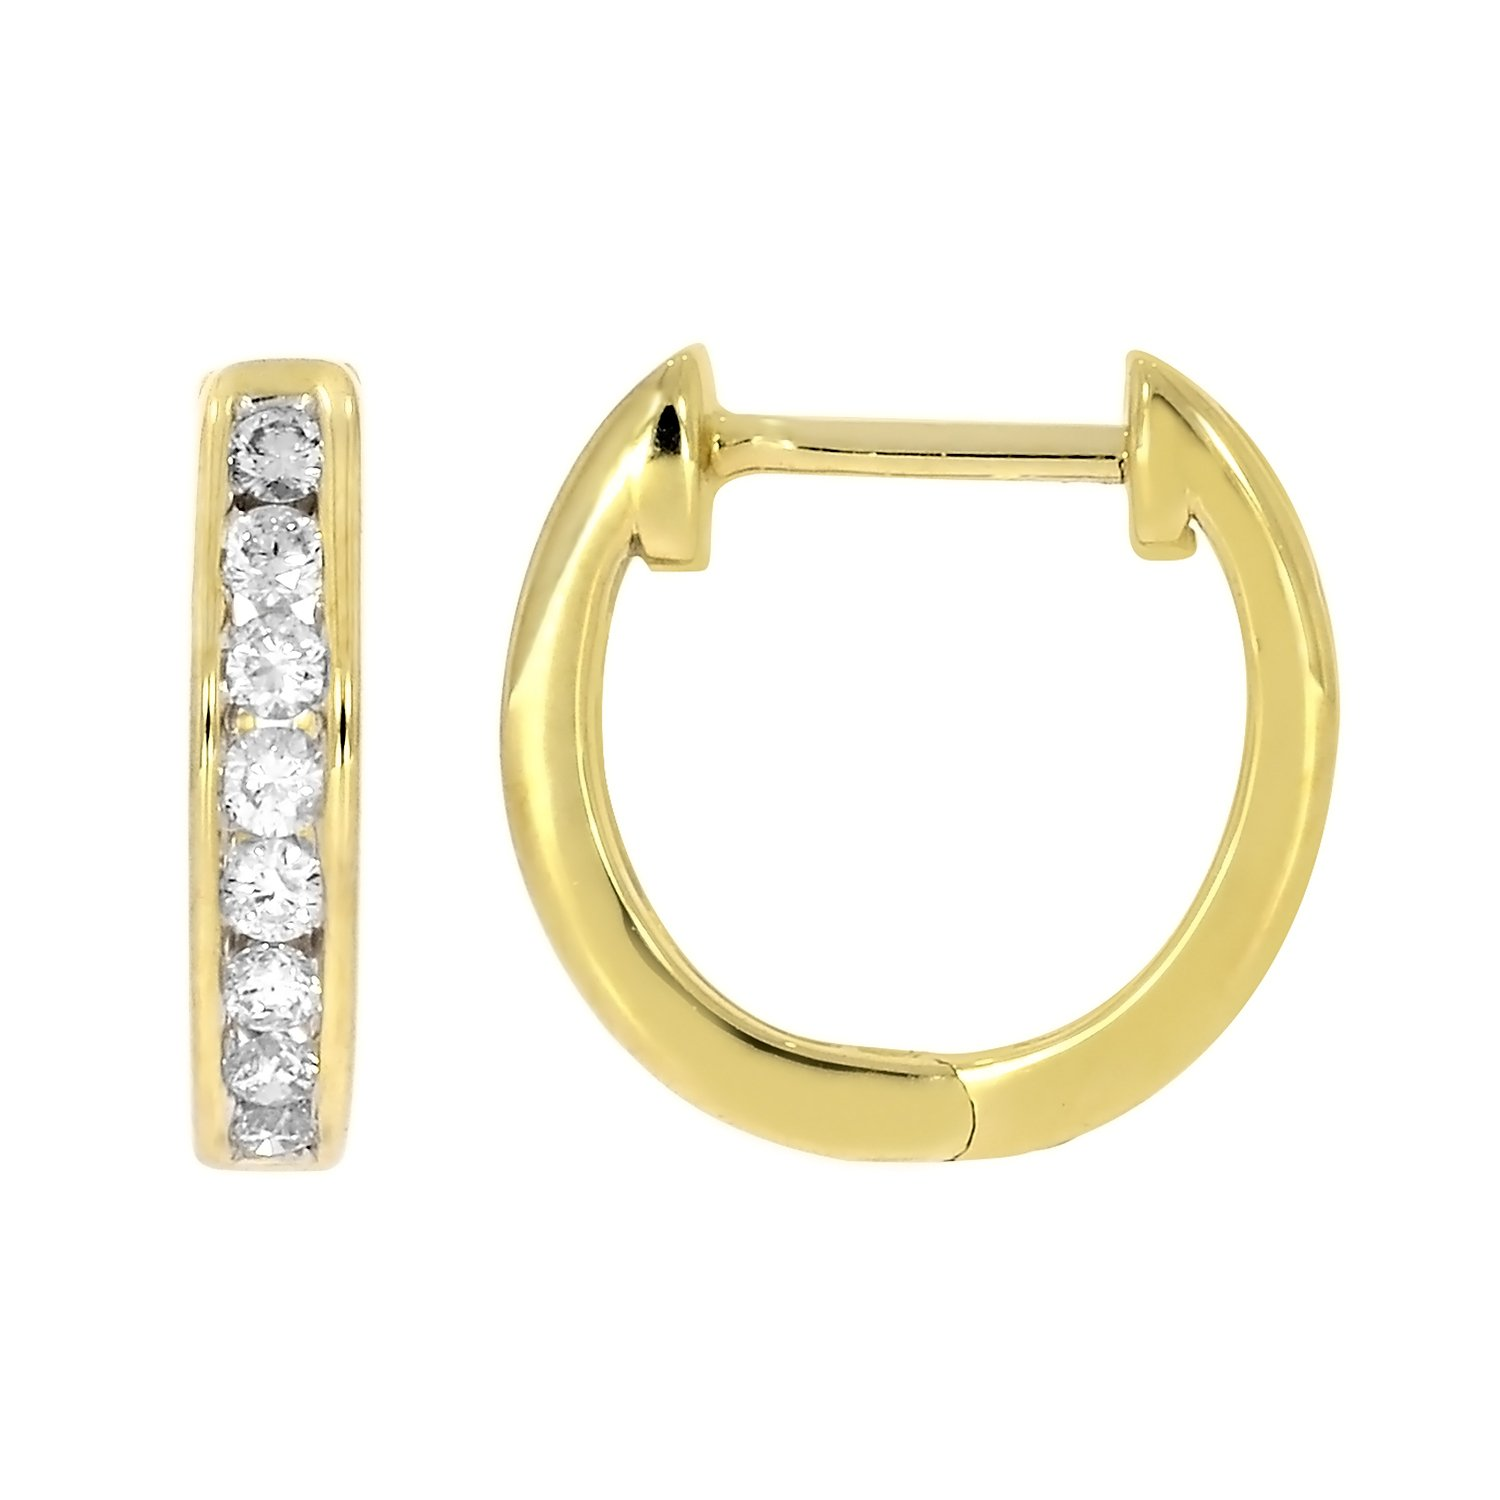 1/4 cttw 10k Solid Gold Round Cut White Diamond Ladies Dainty Hoop Earrings (yellow-gold)